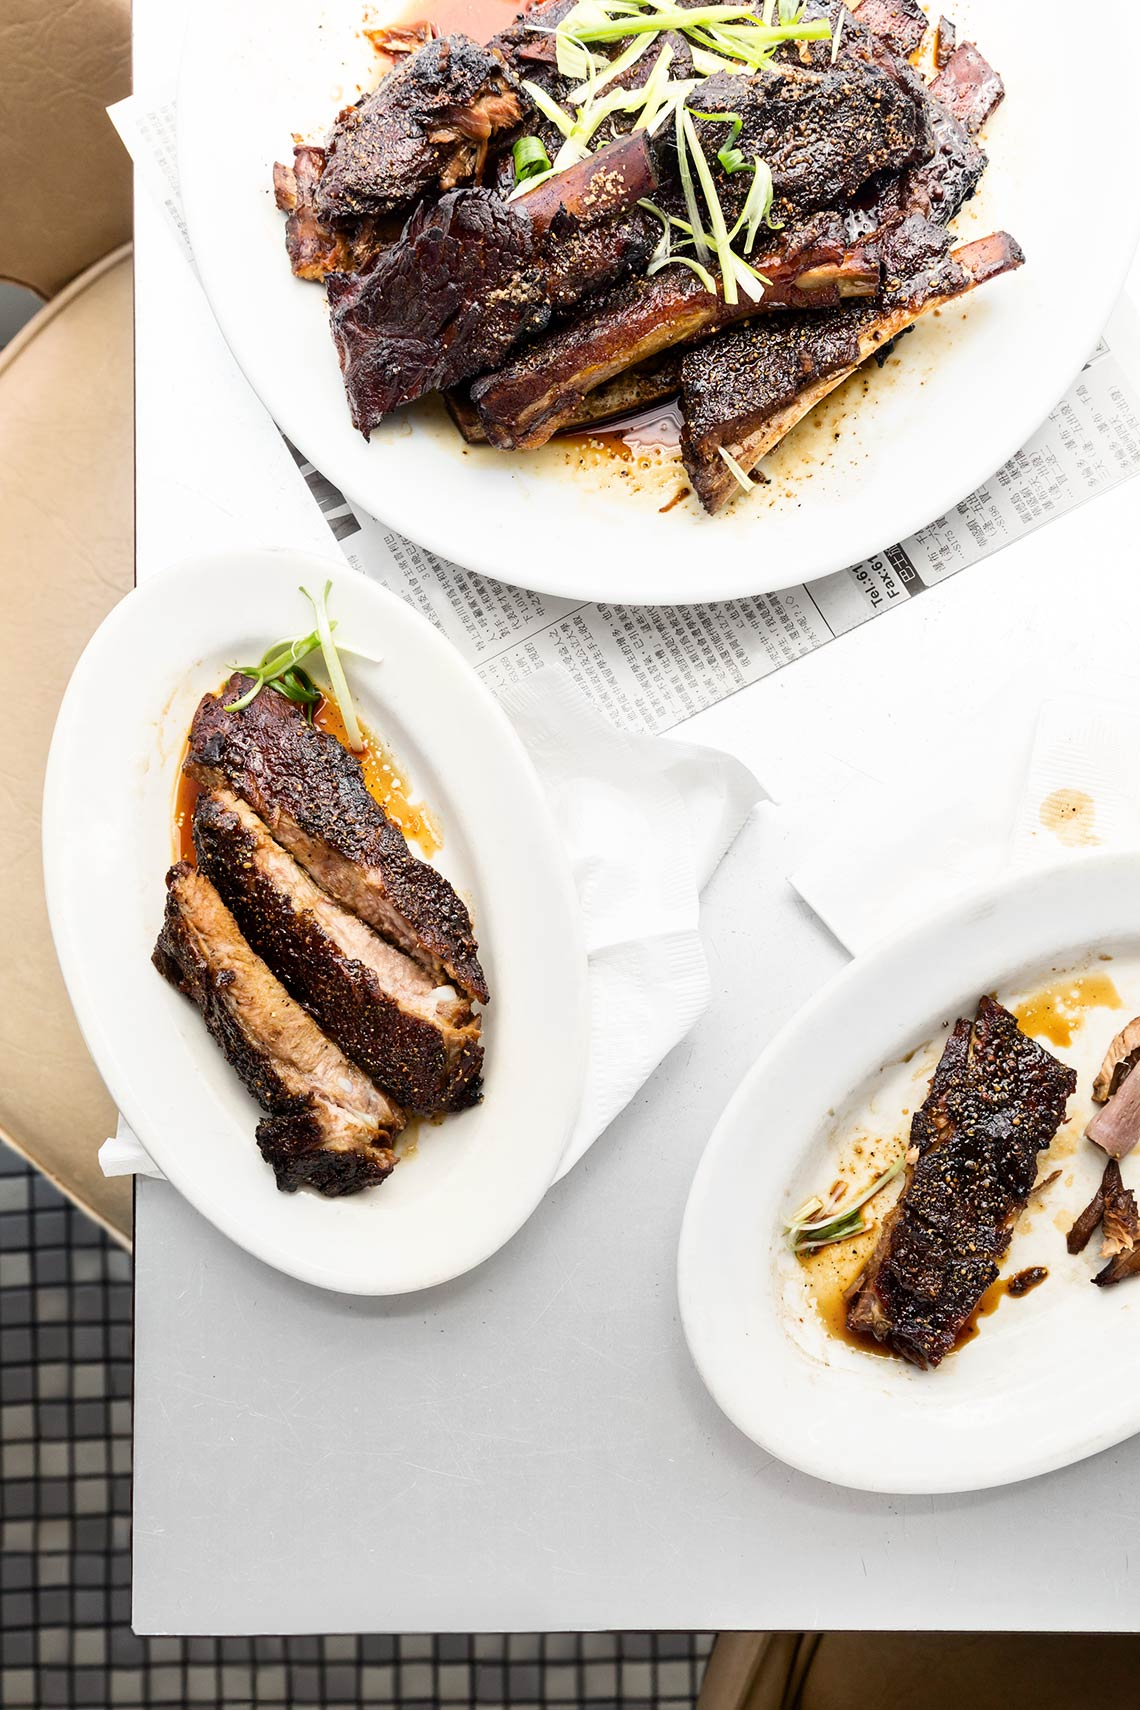 Tea-smoked ribs from Myers + Chang, Boston